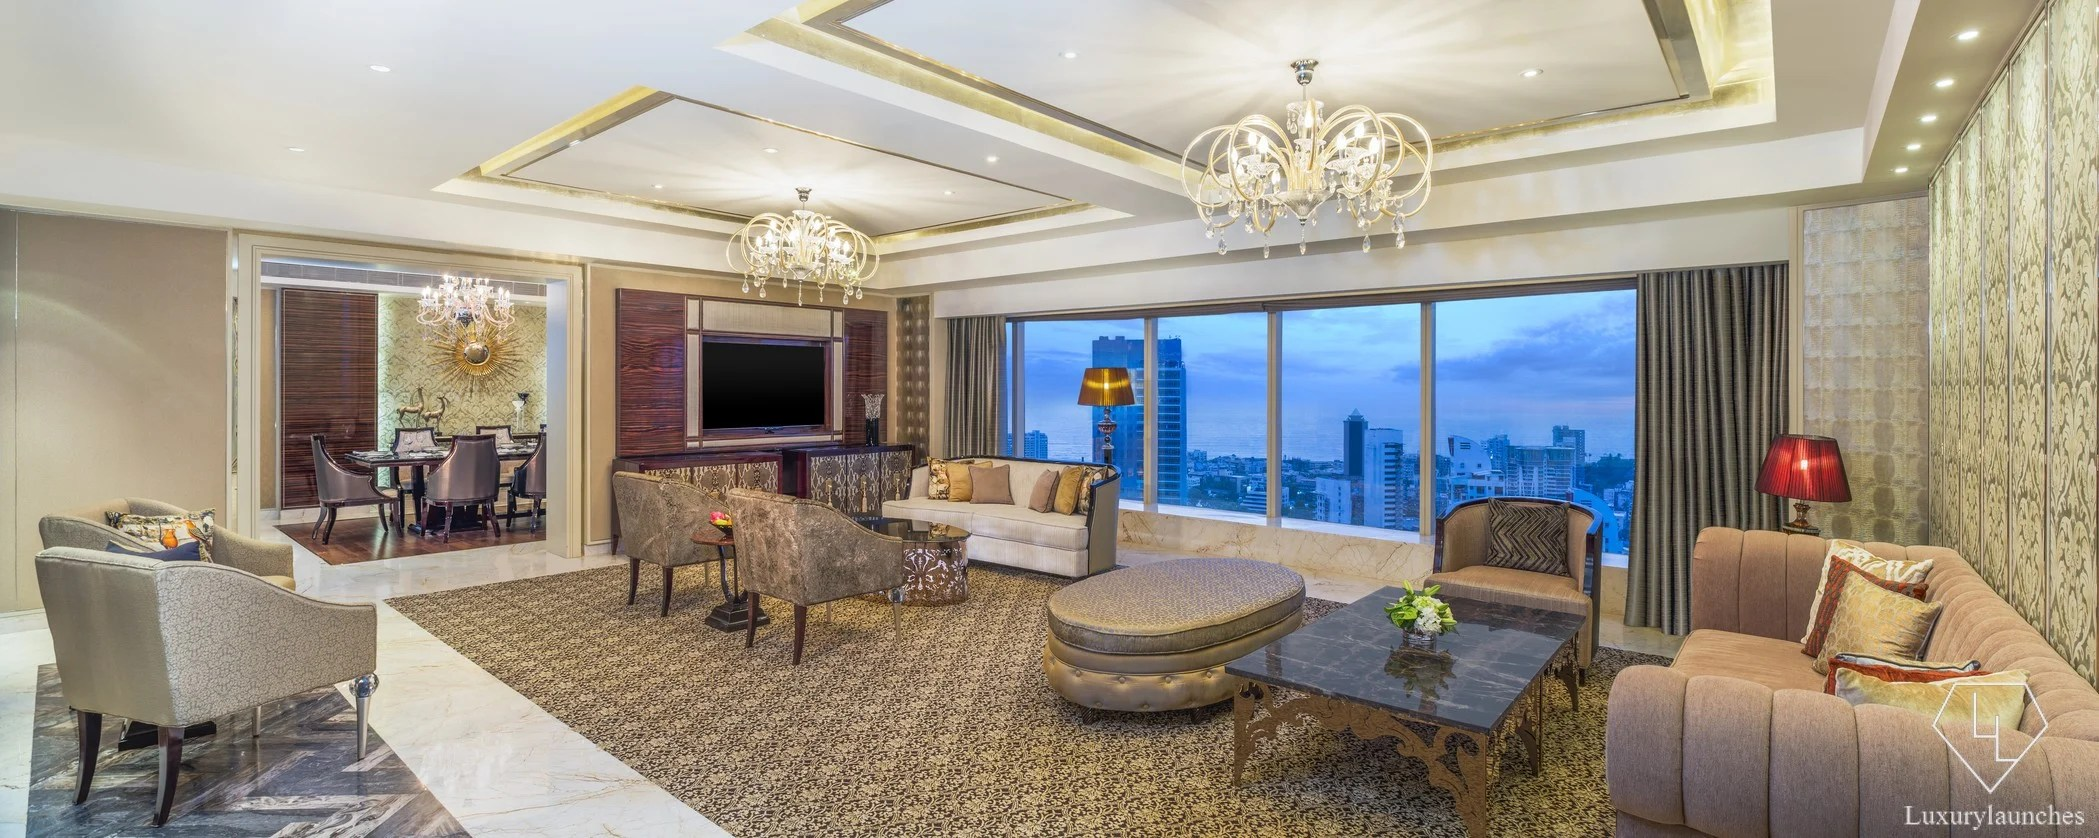 Suite Of The Week Presidential Suite At The St Regis Mumbai India